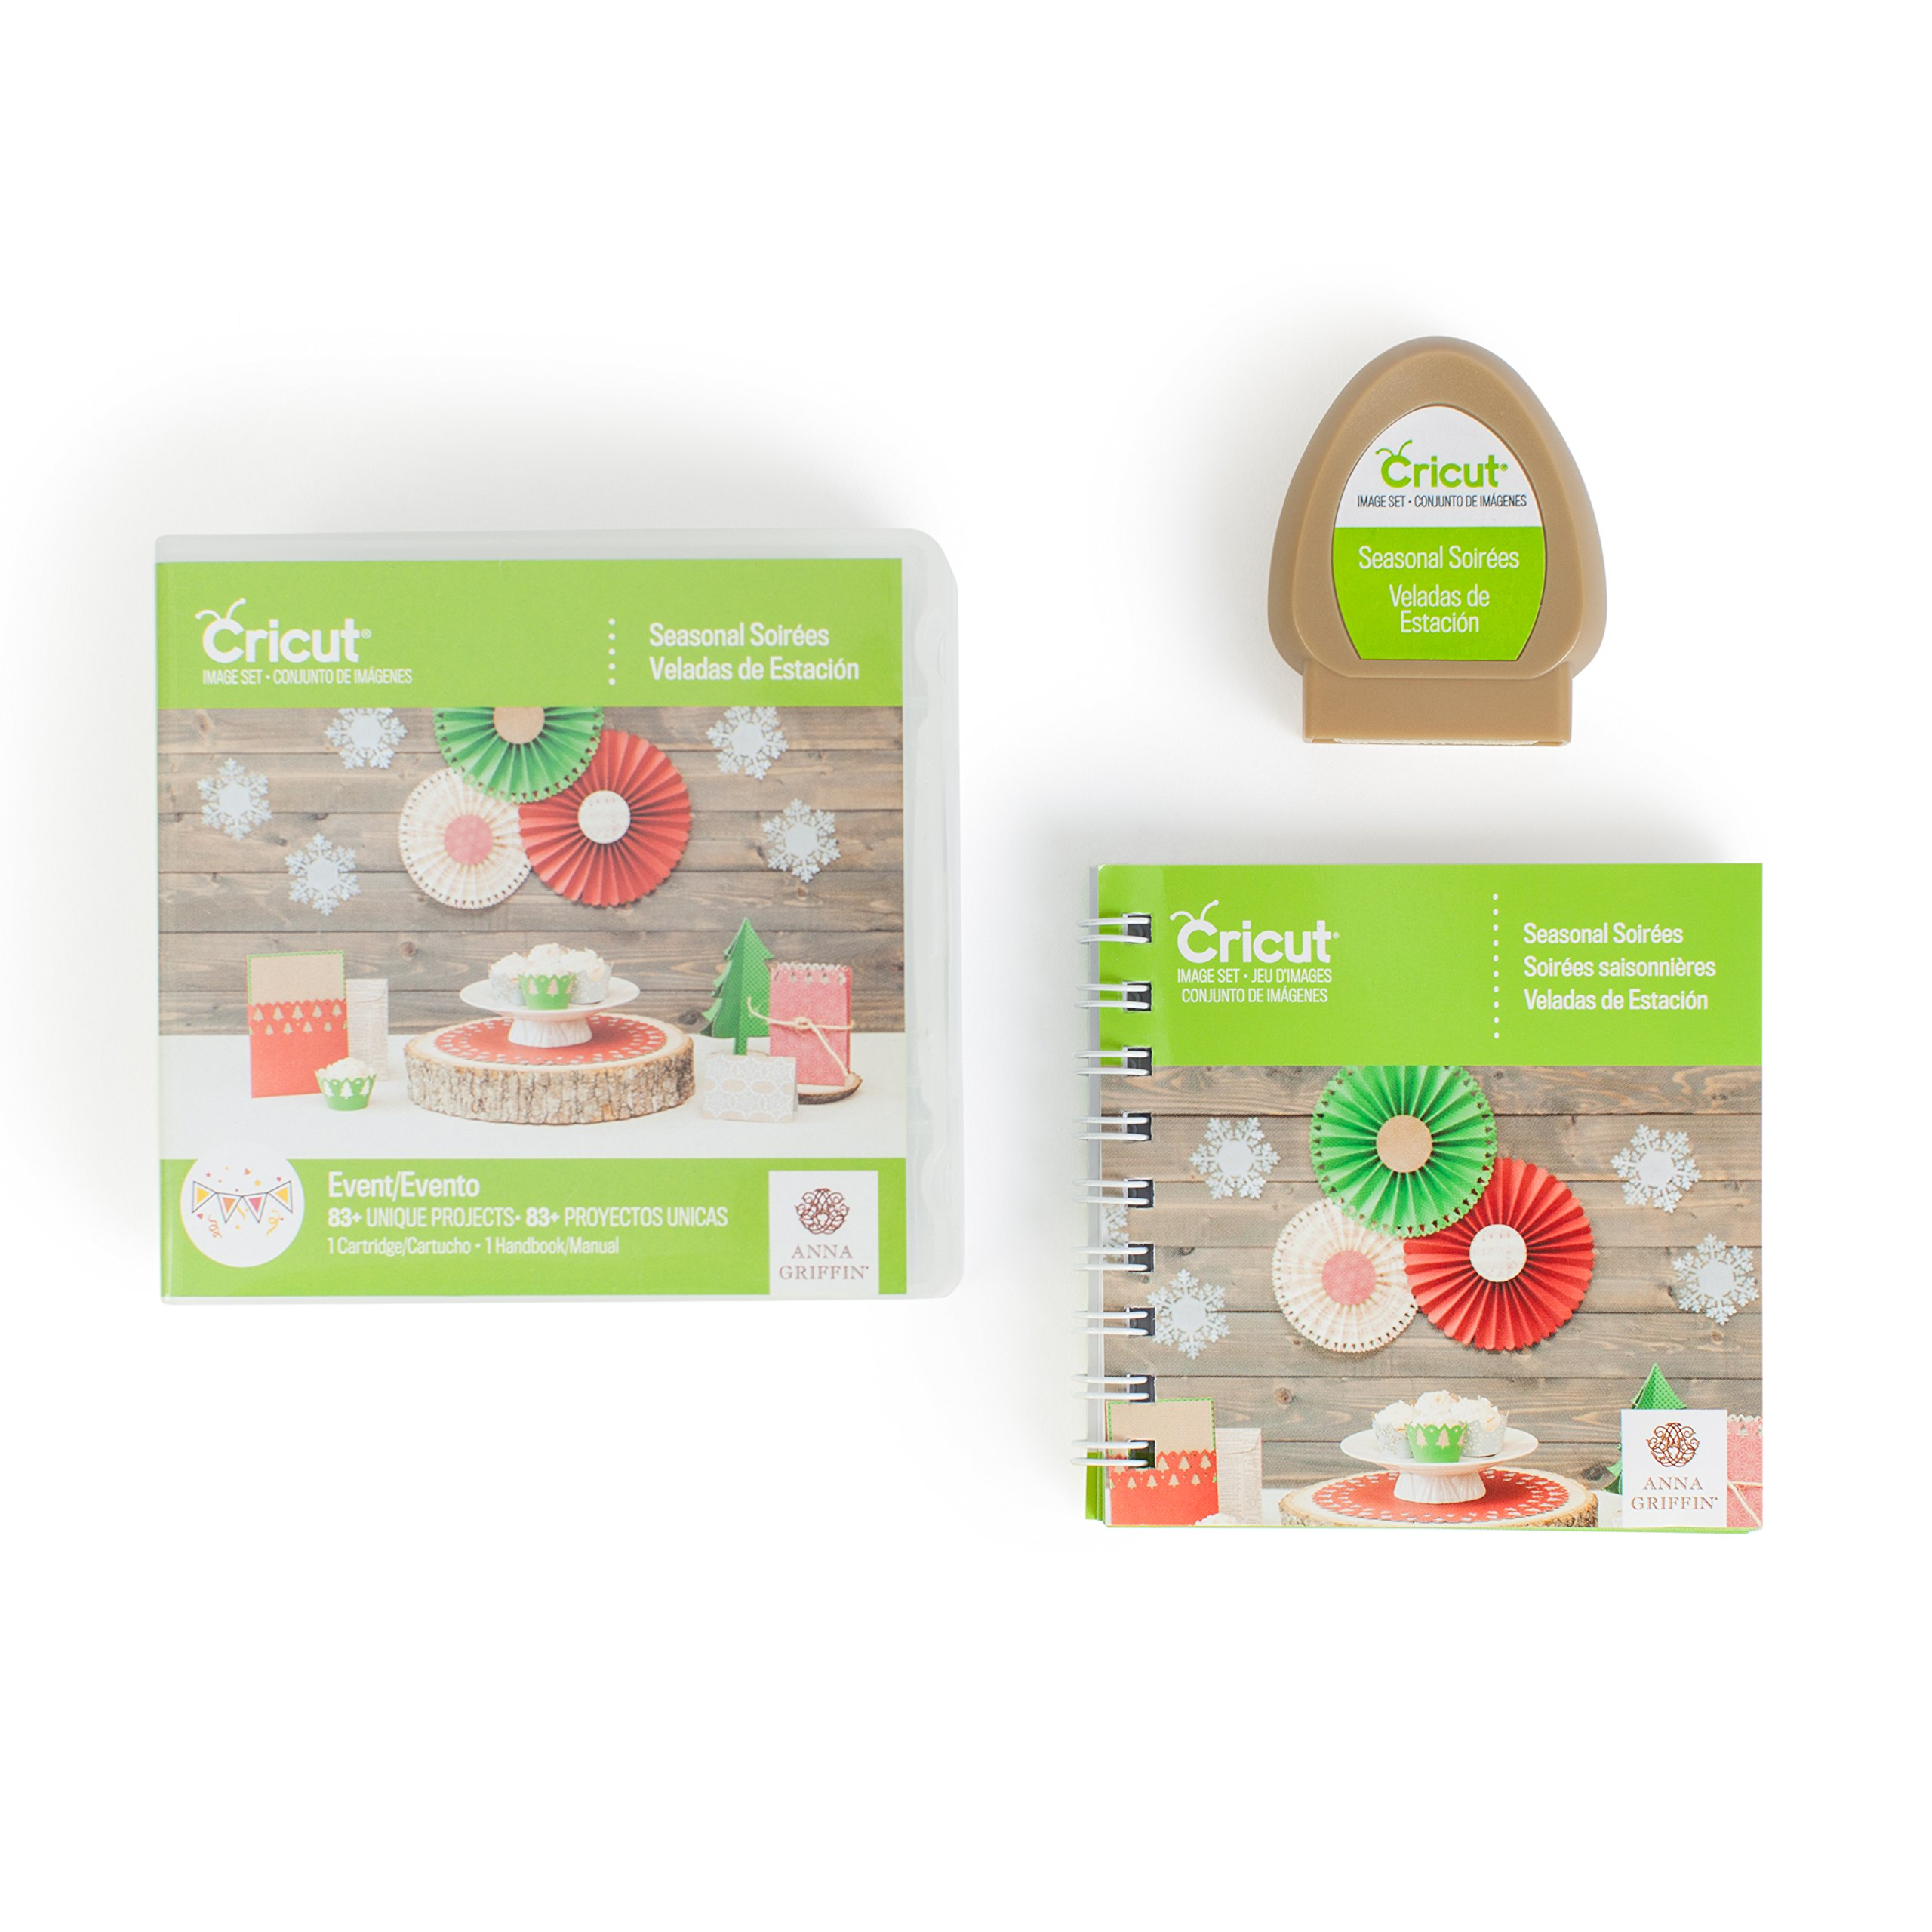 Cricut Seasonal Soirees Cartridge